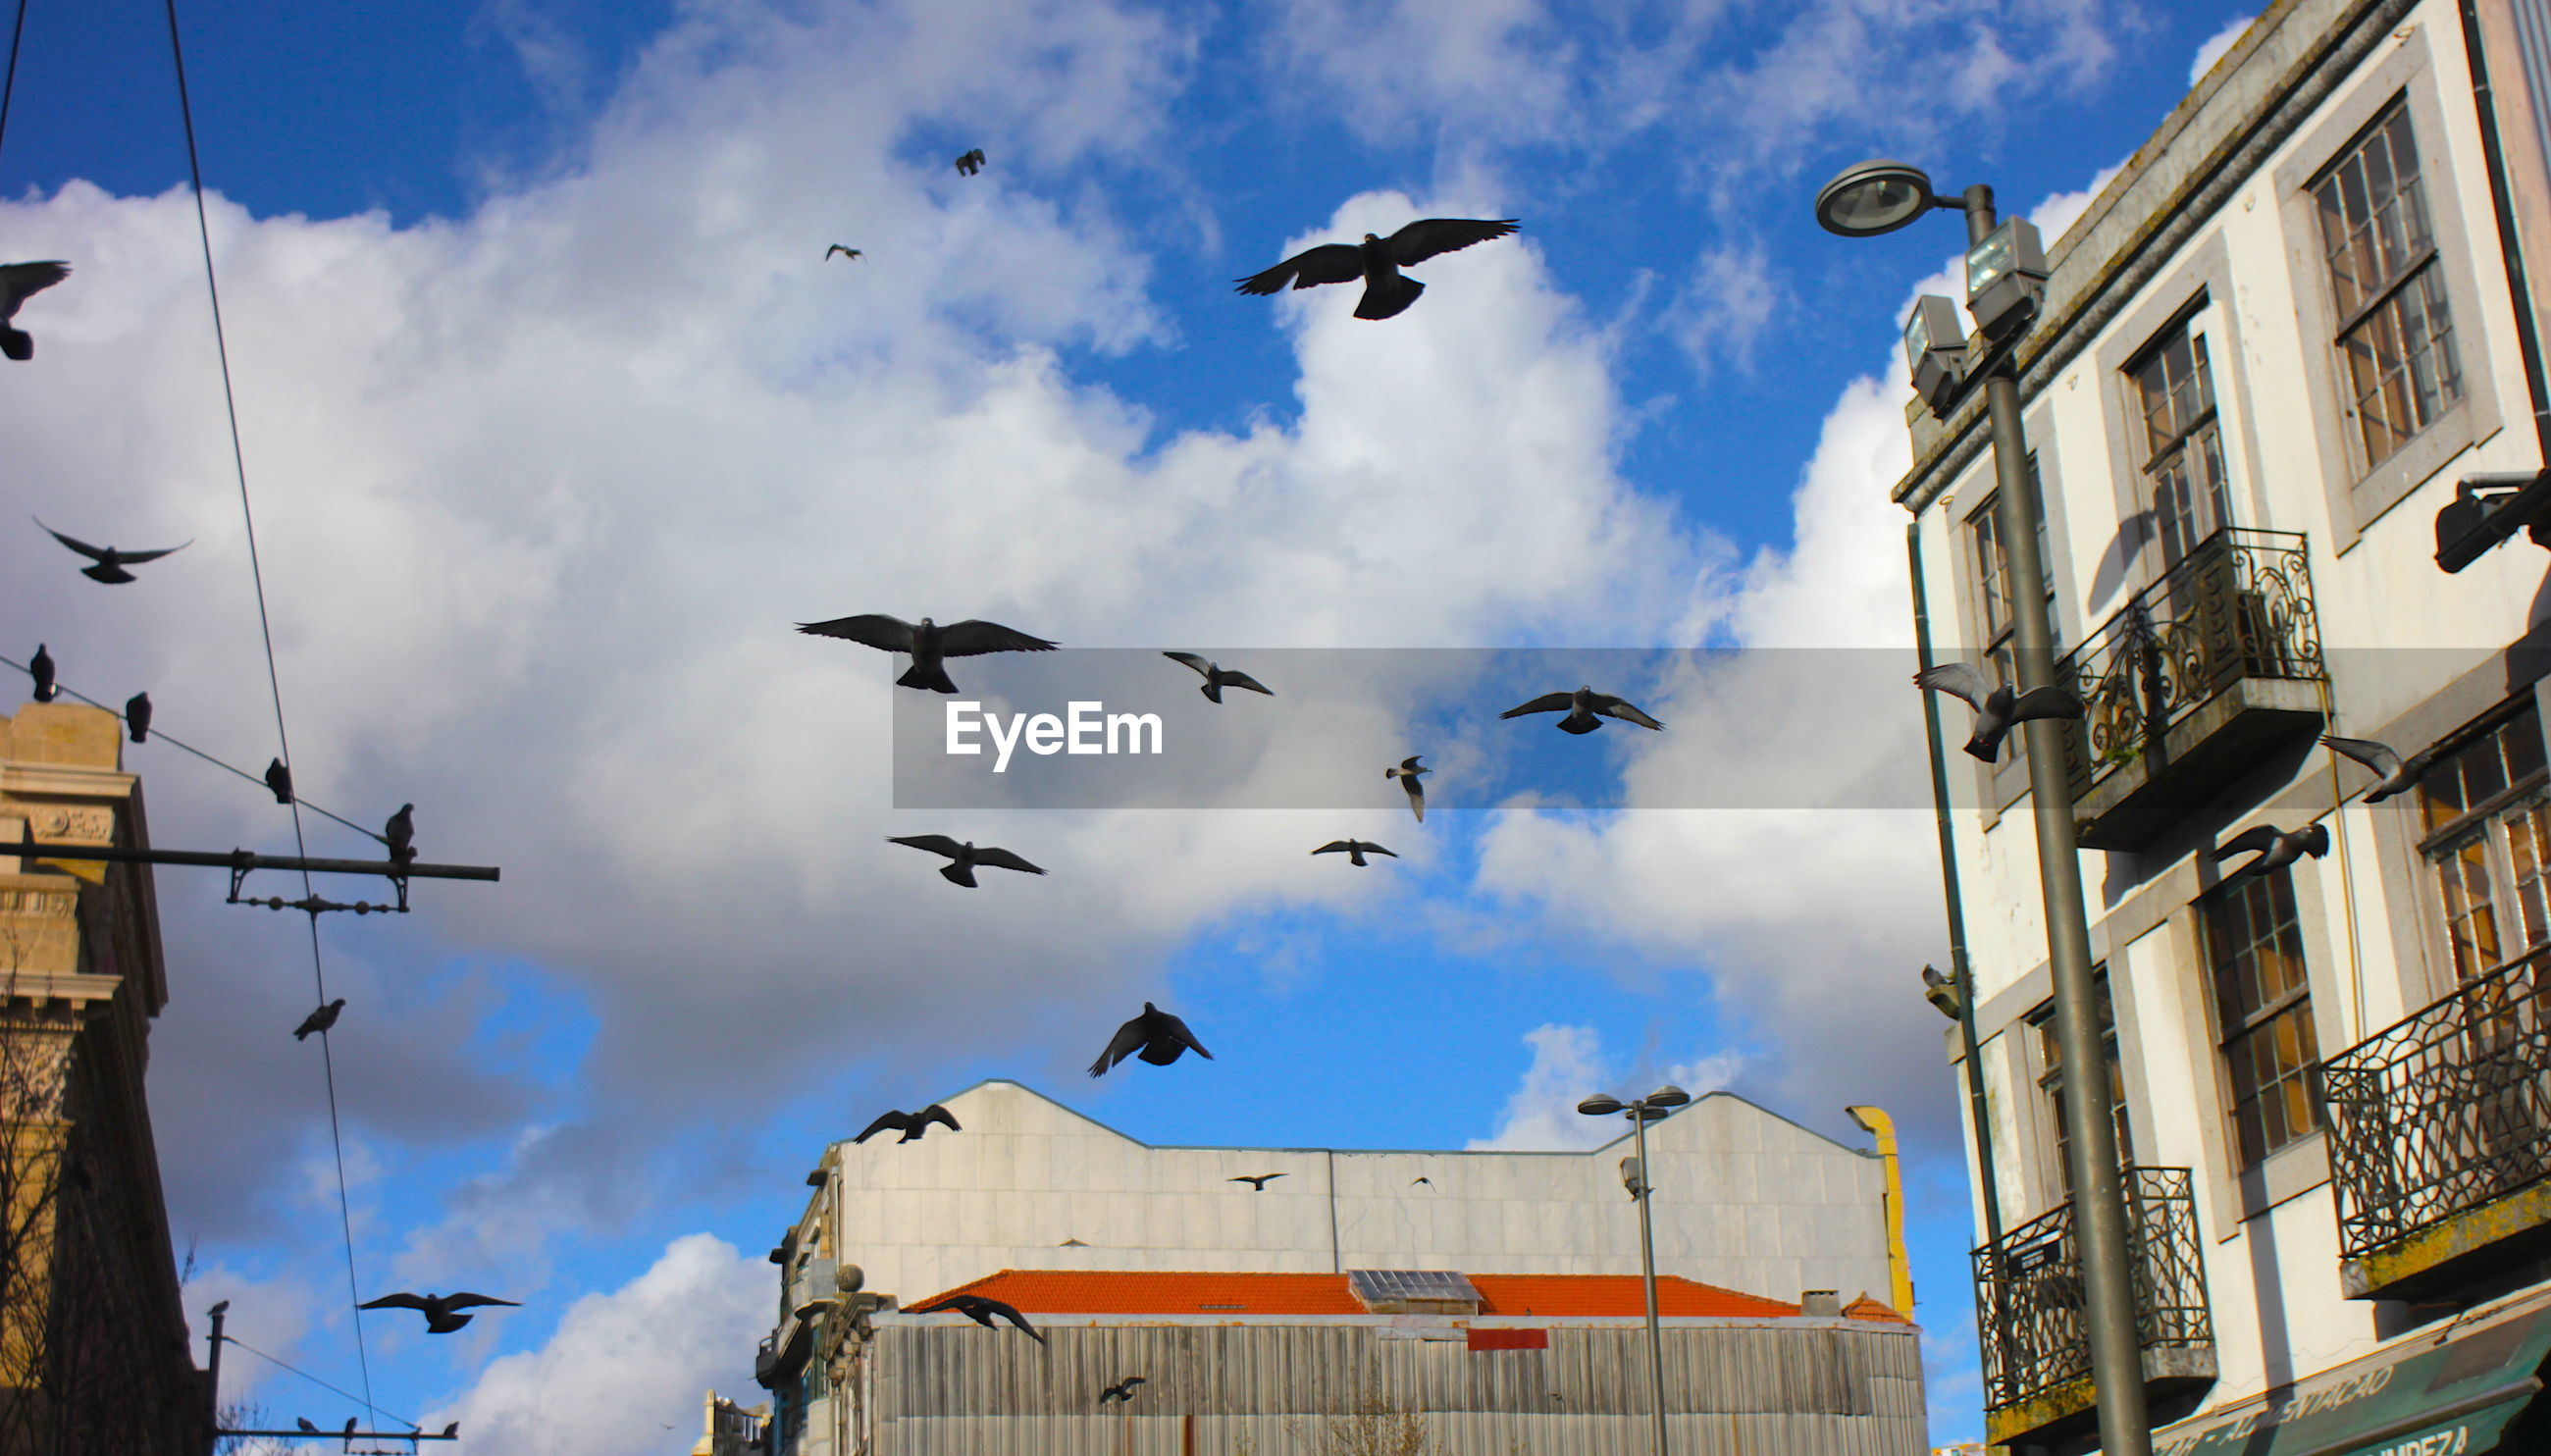 LOW ANGLE VIEW OF BIRDS FLYING IN CITY